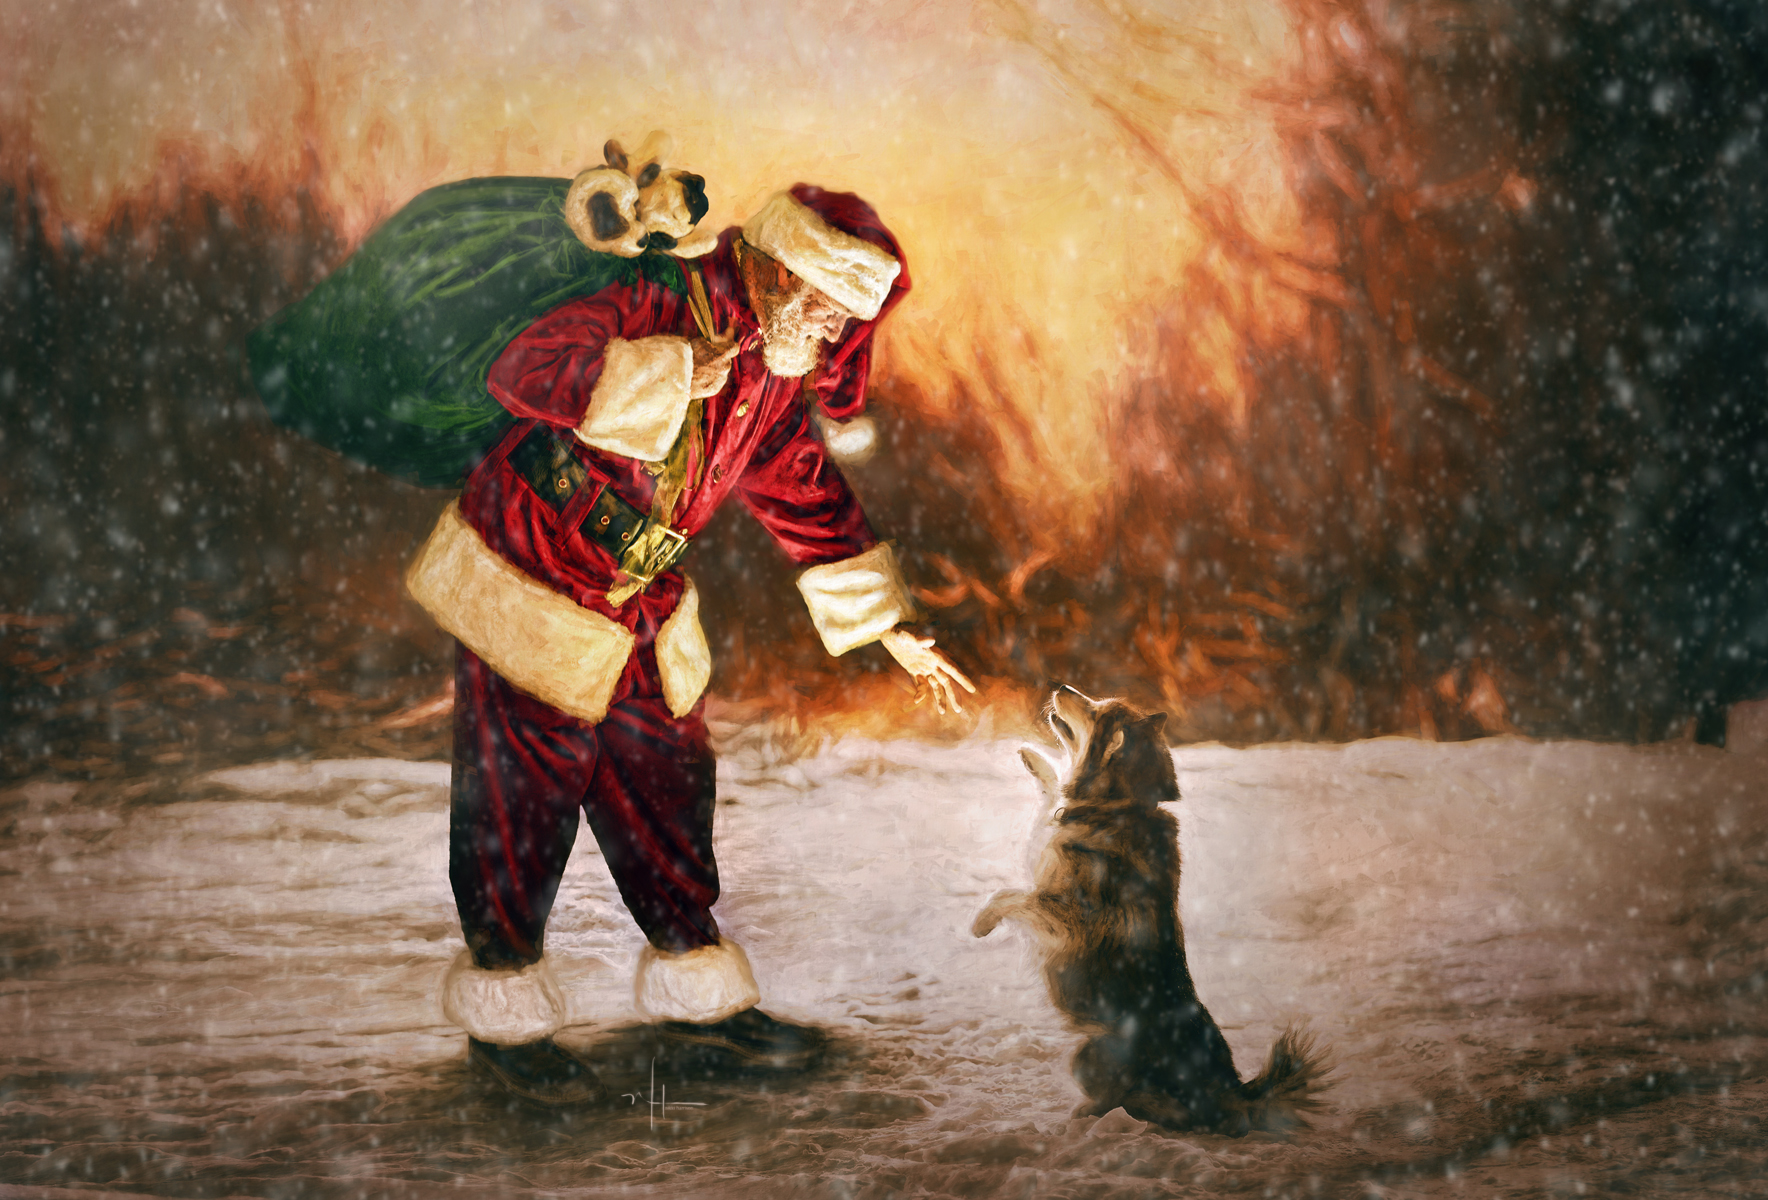 The Epitome of an actual interactive experience with Santa. This is not just a photo session, its a memory that you will cherish forever in art.